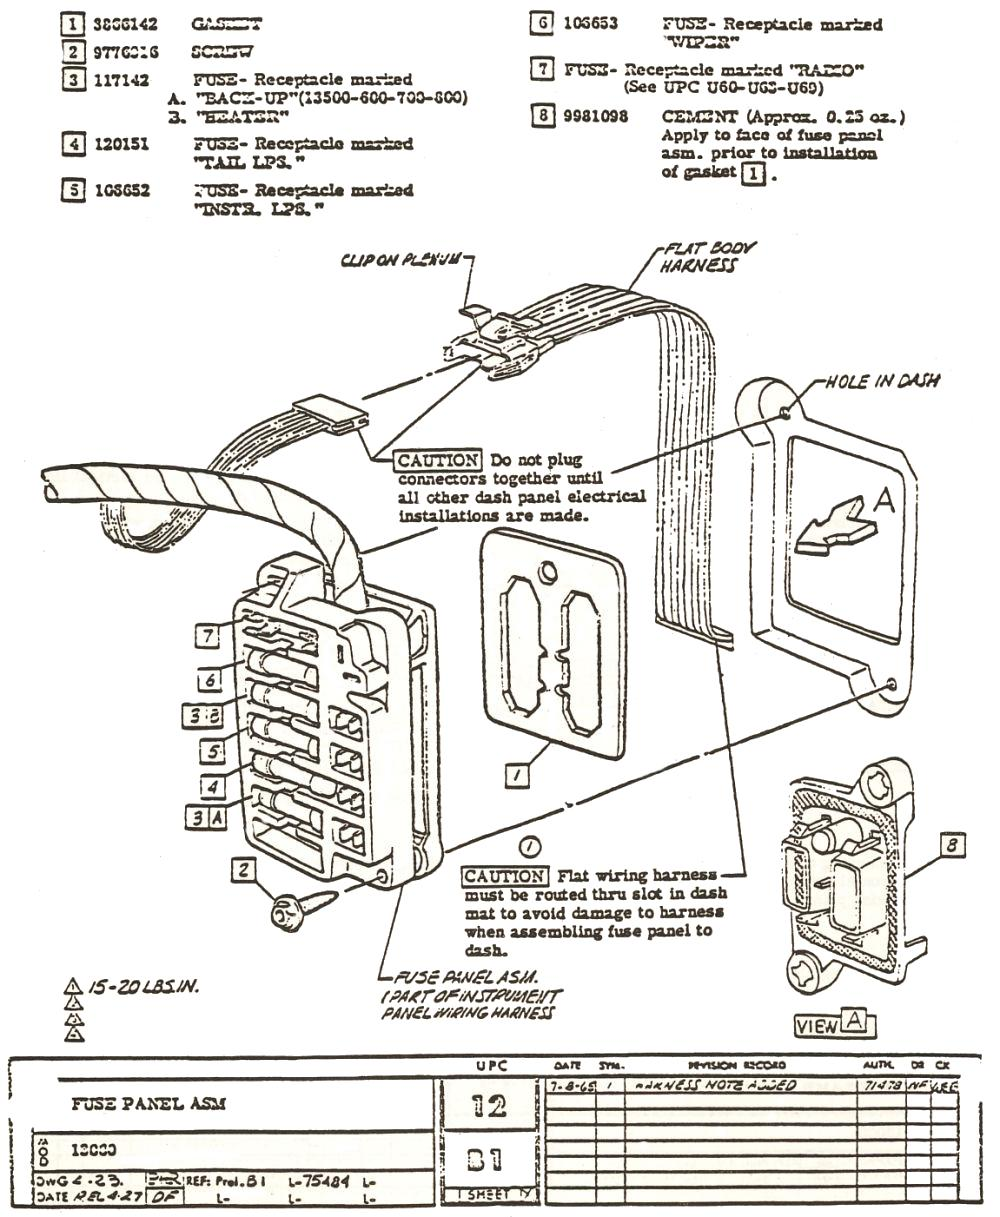 1968 chevy nova fuse box  1968  free engine image for user